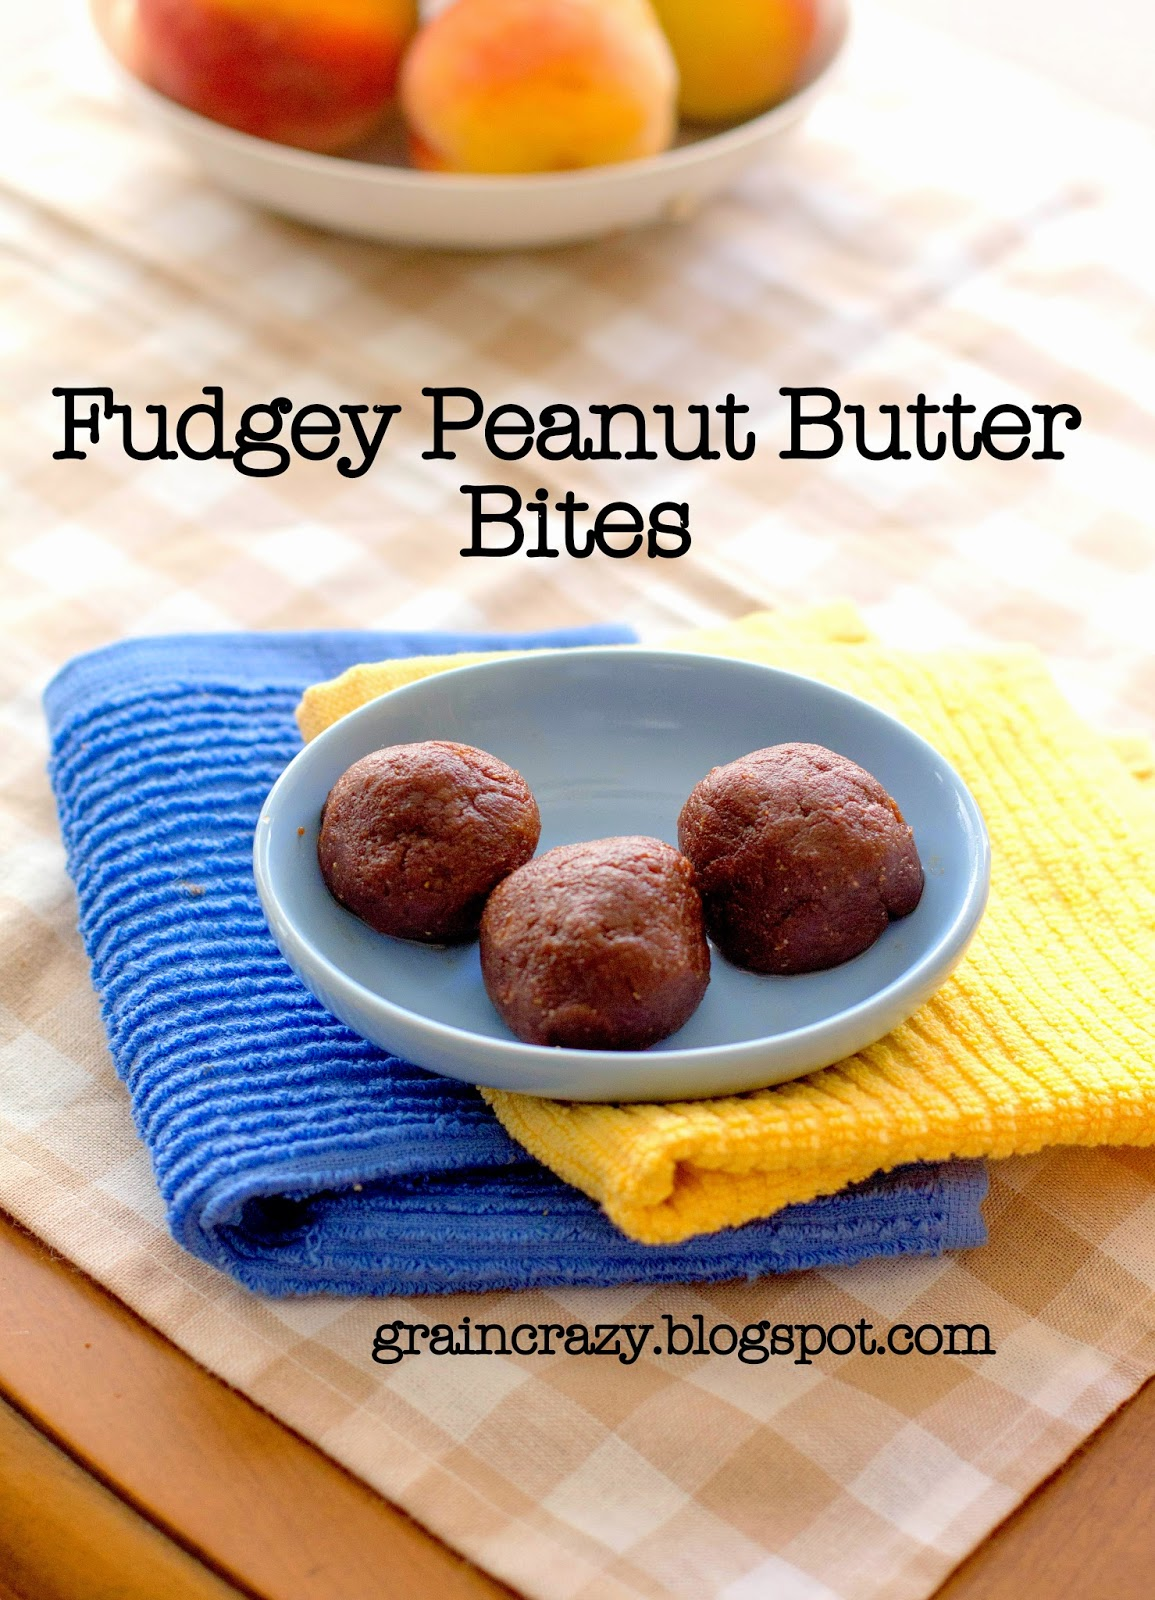 Grain Crazy: Fudgey Peanut Butter Bites